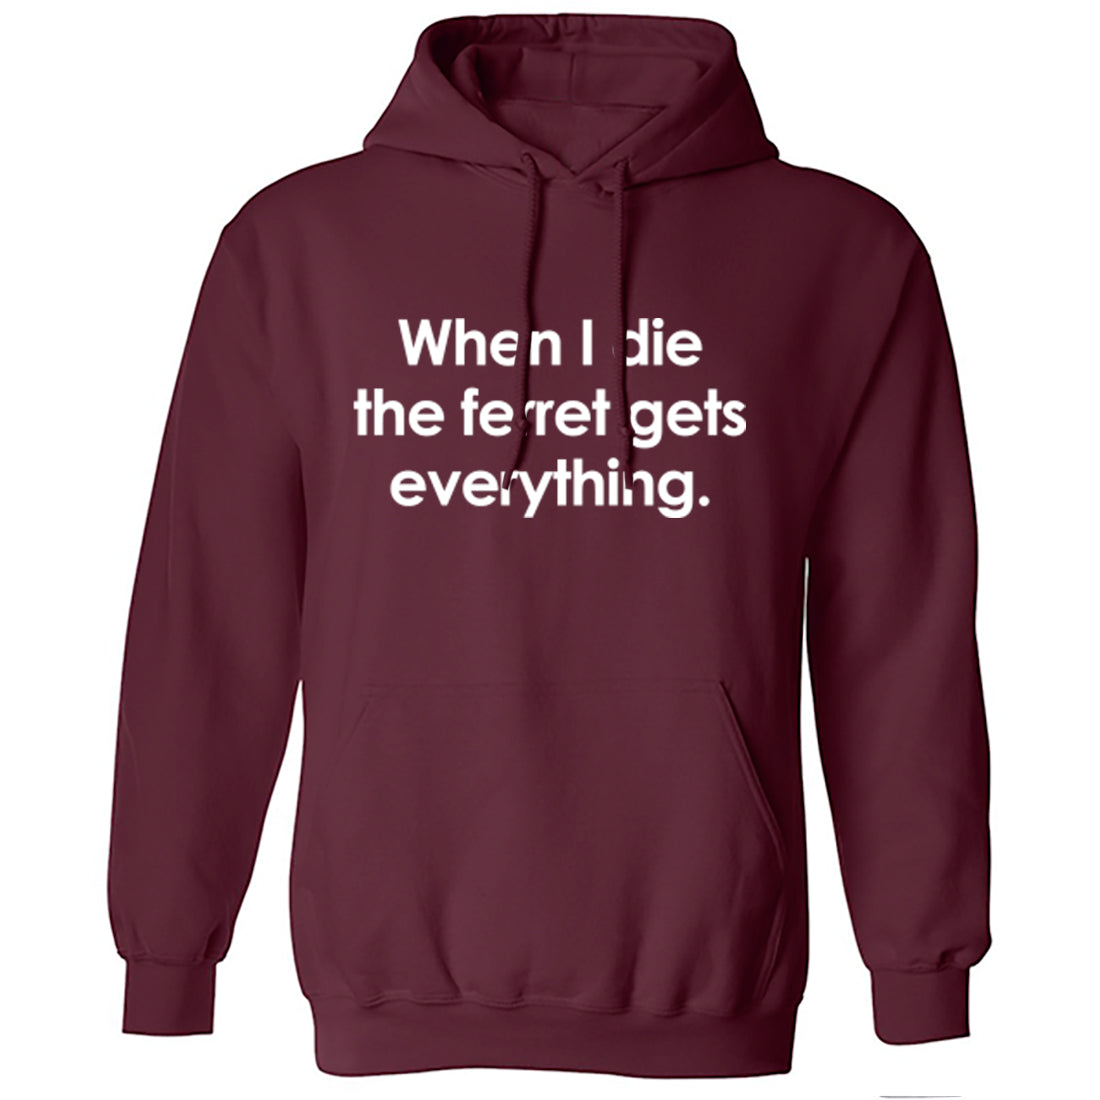 When I Die The Ferret Gets Everything Unisex Hoodie K2224 - Illustrated Identity Ltd.